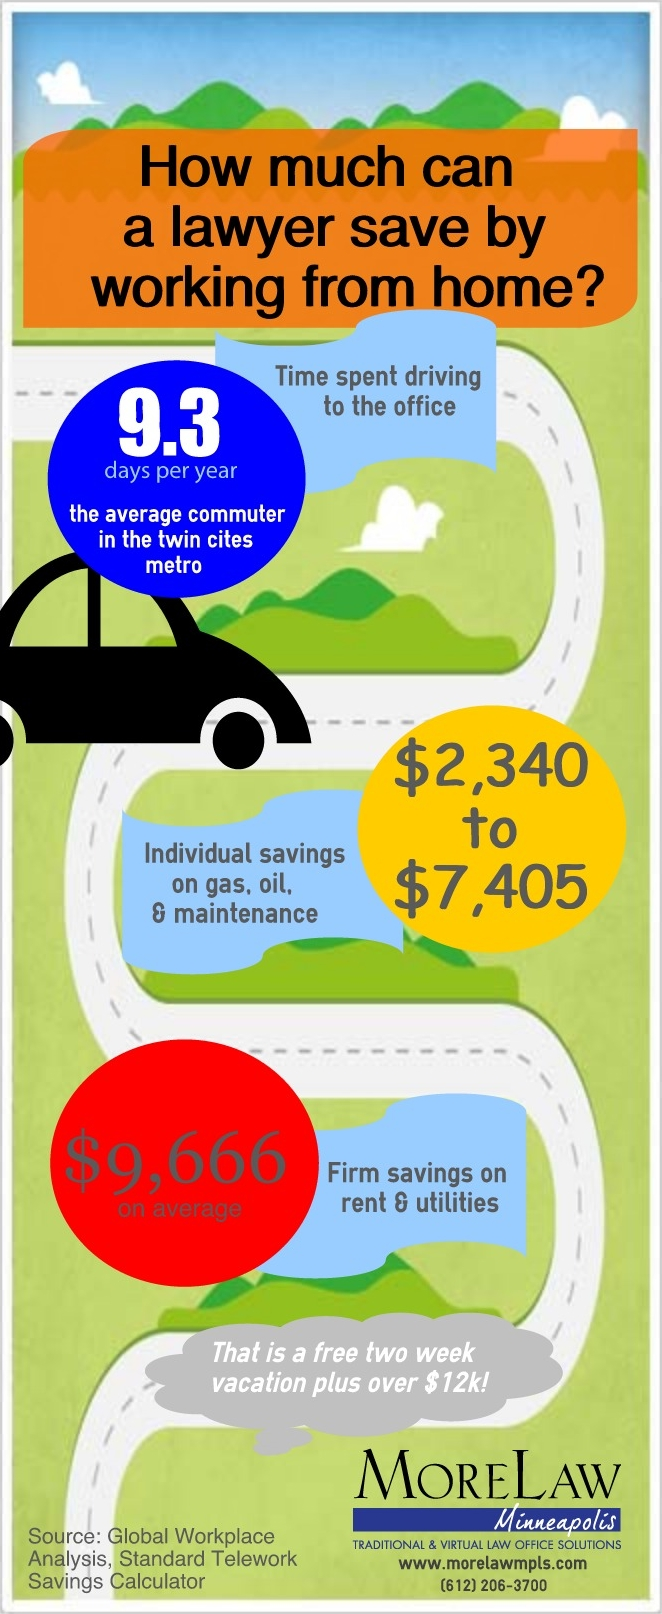 How Much Can A Lawyer Save By Working From Home? (Infographic)